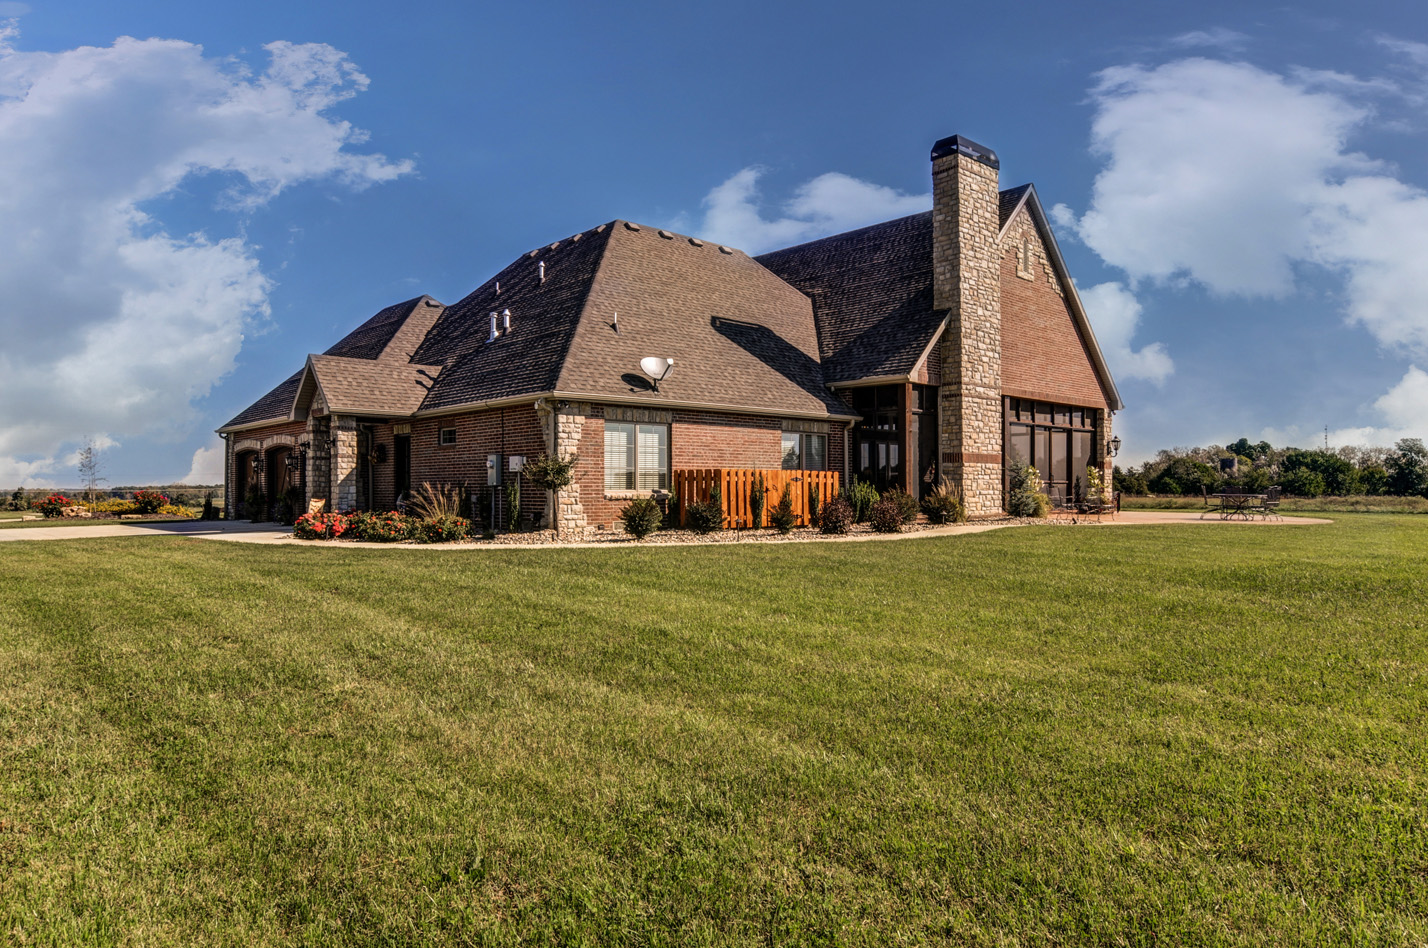 built-by-brett-custom-home-springfield-mo-13735-lawrence-2100-exterior-004.jpg